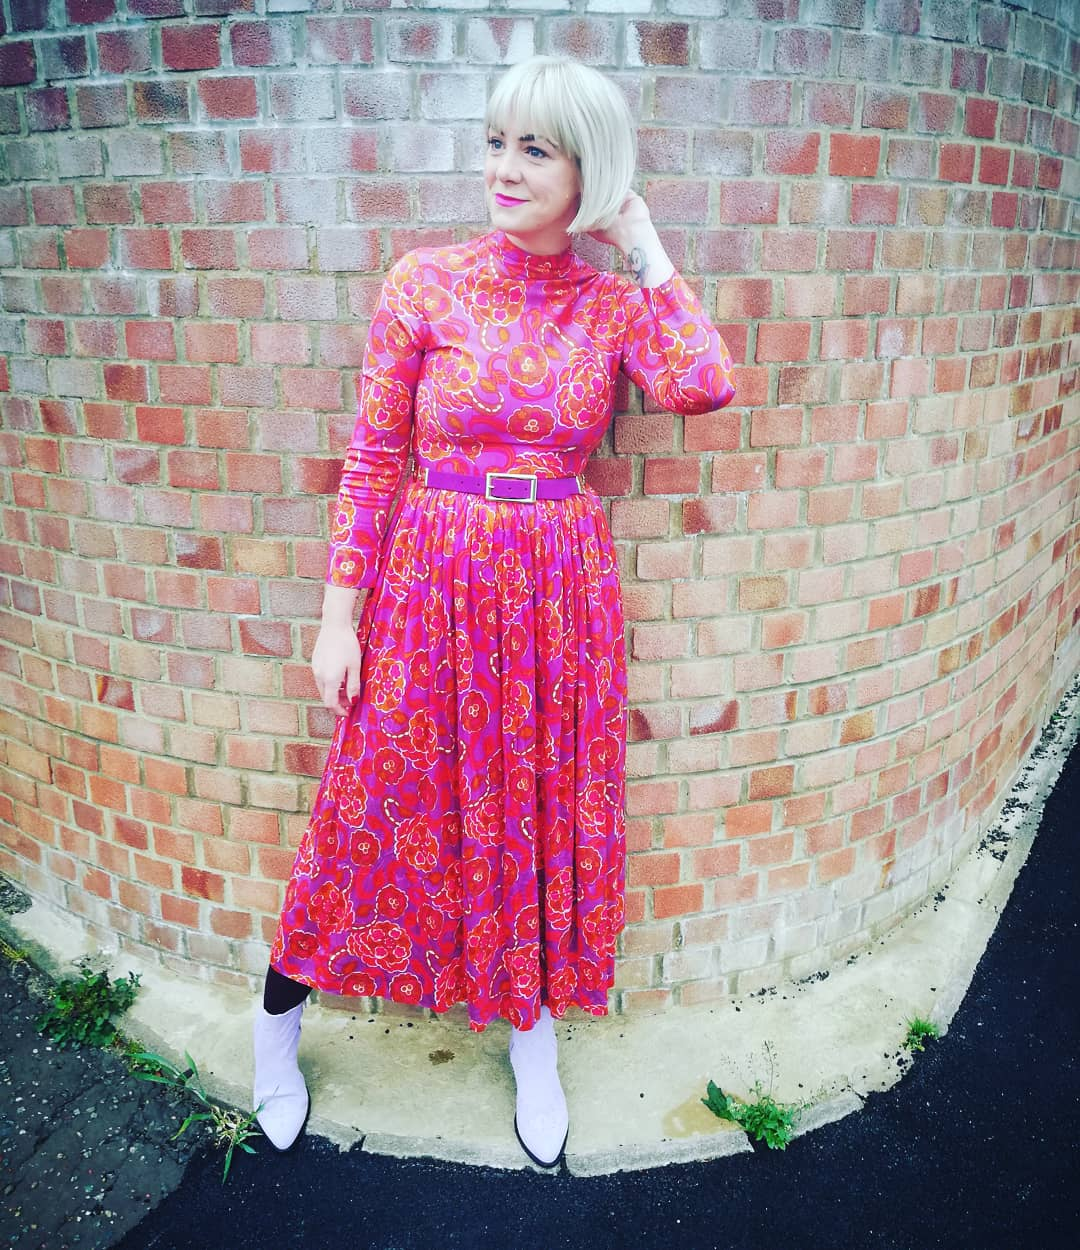 Cinching in a 70s dress from  Scarlet Vintage Retro  with a belt from a  Cancer Research UK Shop .